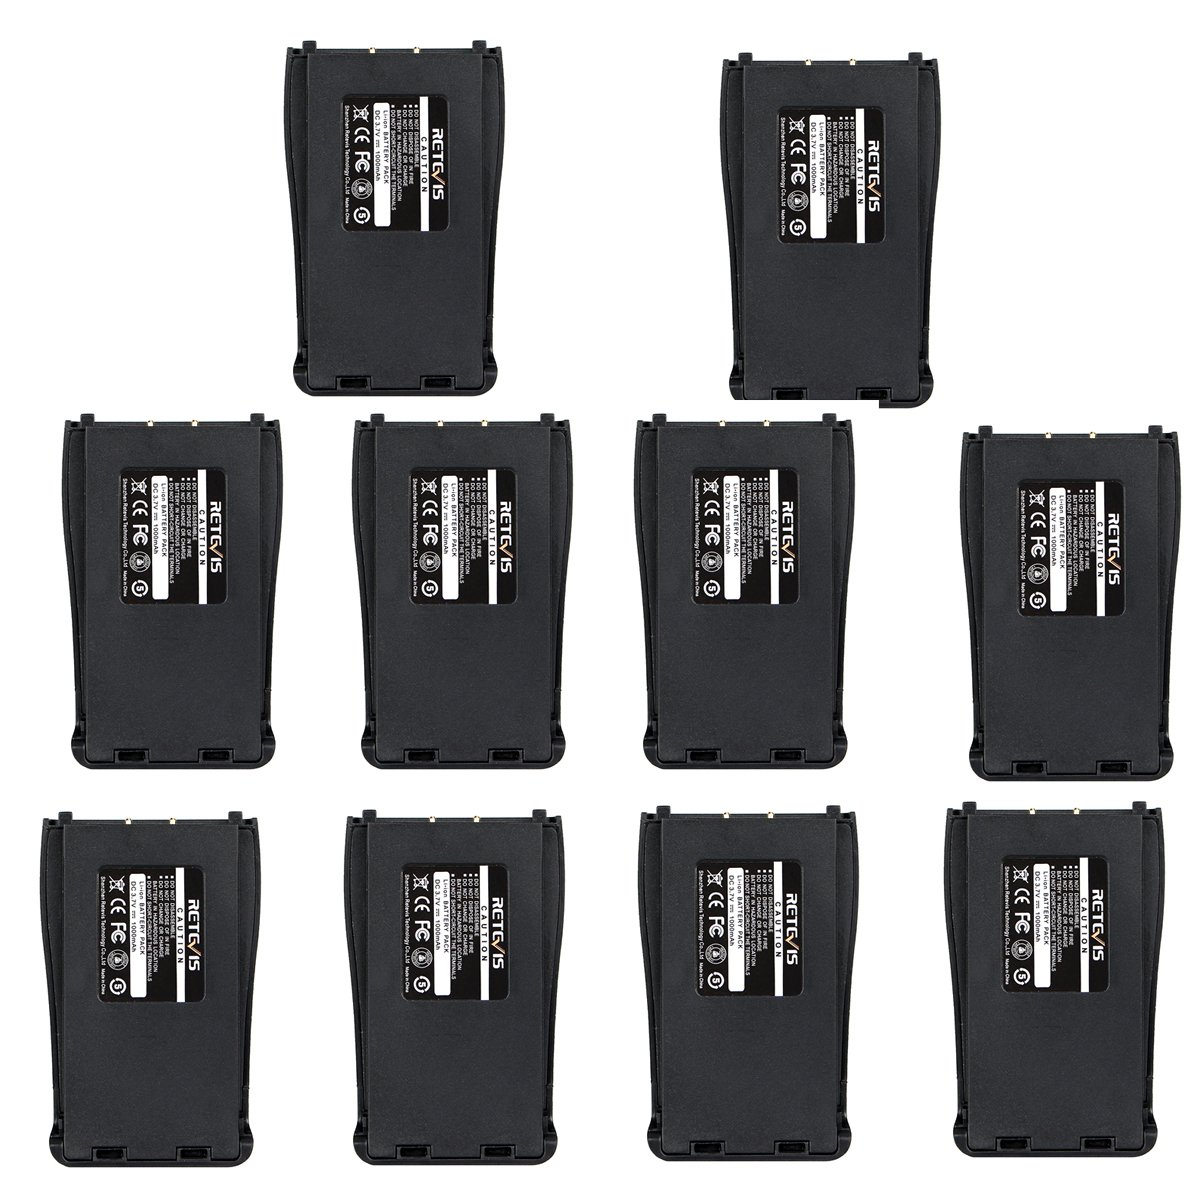 Retevis H-777 Two-way Radio Battery 1000mAh Original Rechargebale Li-ion Battery for Baofeng BF-888S Retevis H-777 Walkie Talkie (10 Pack)